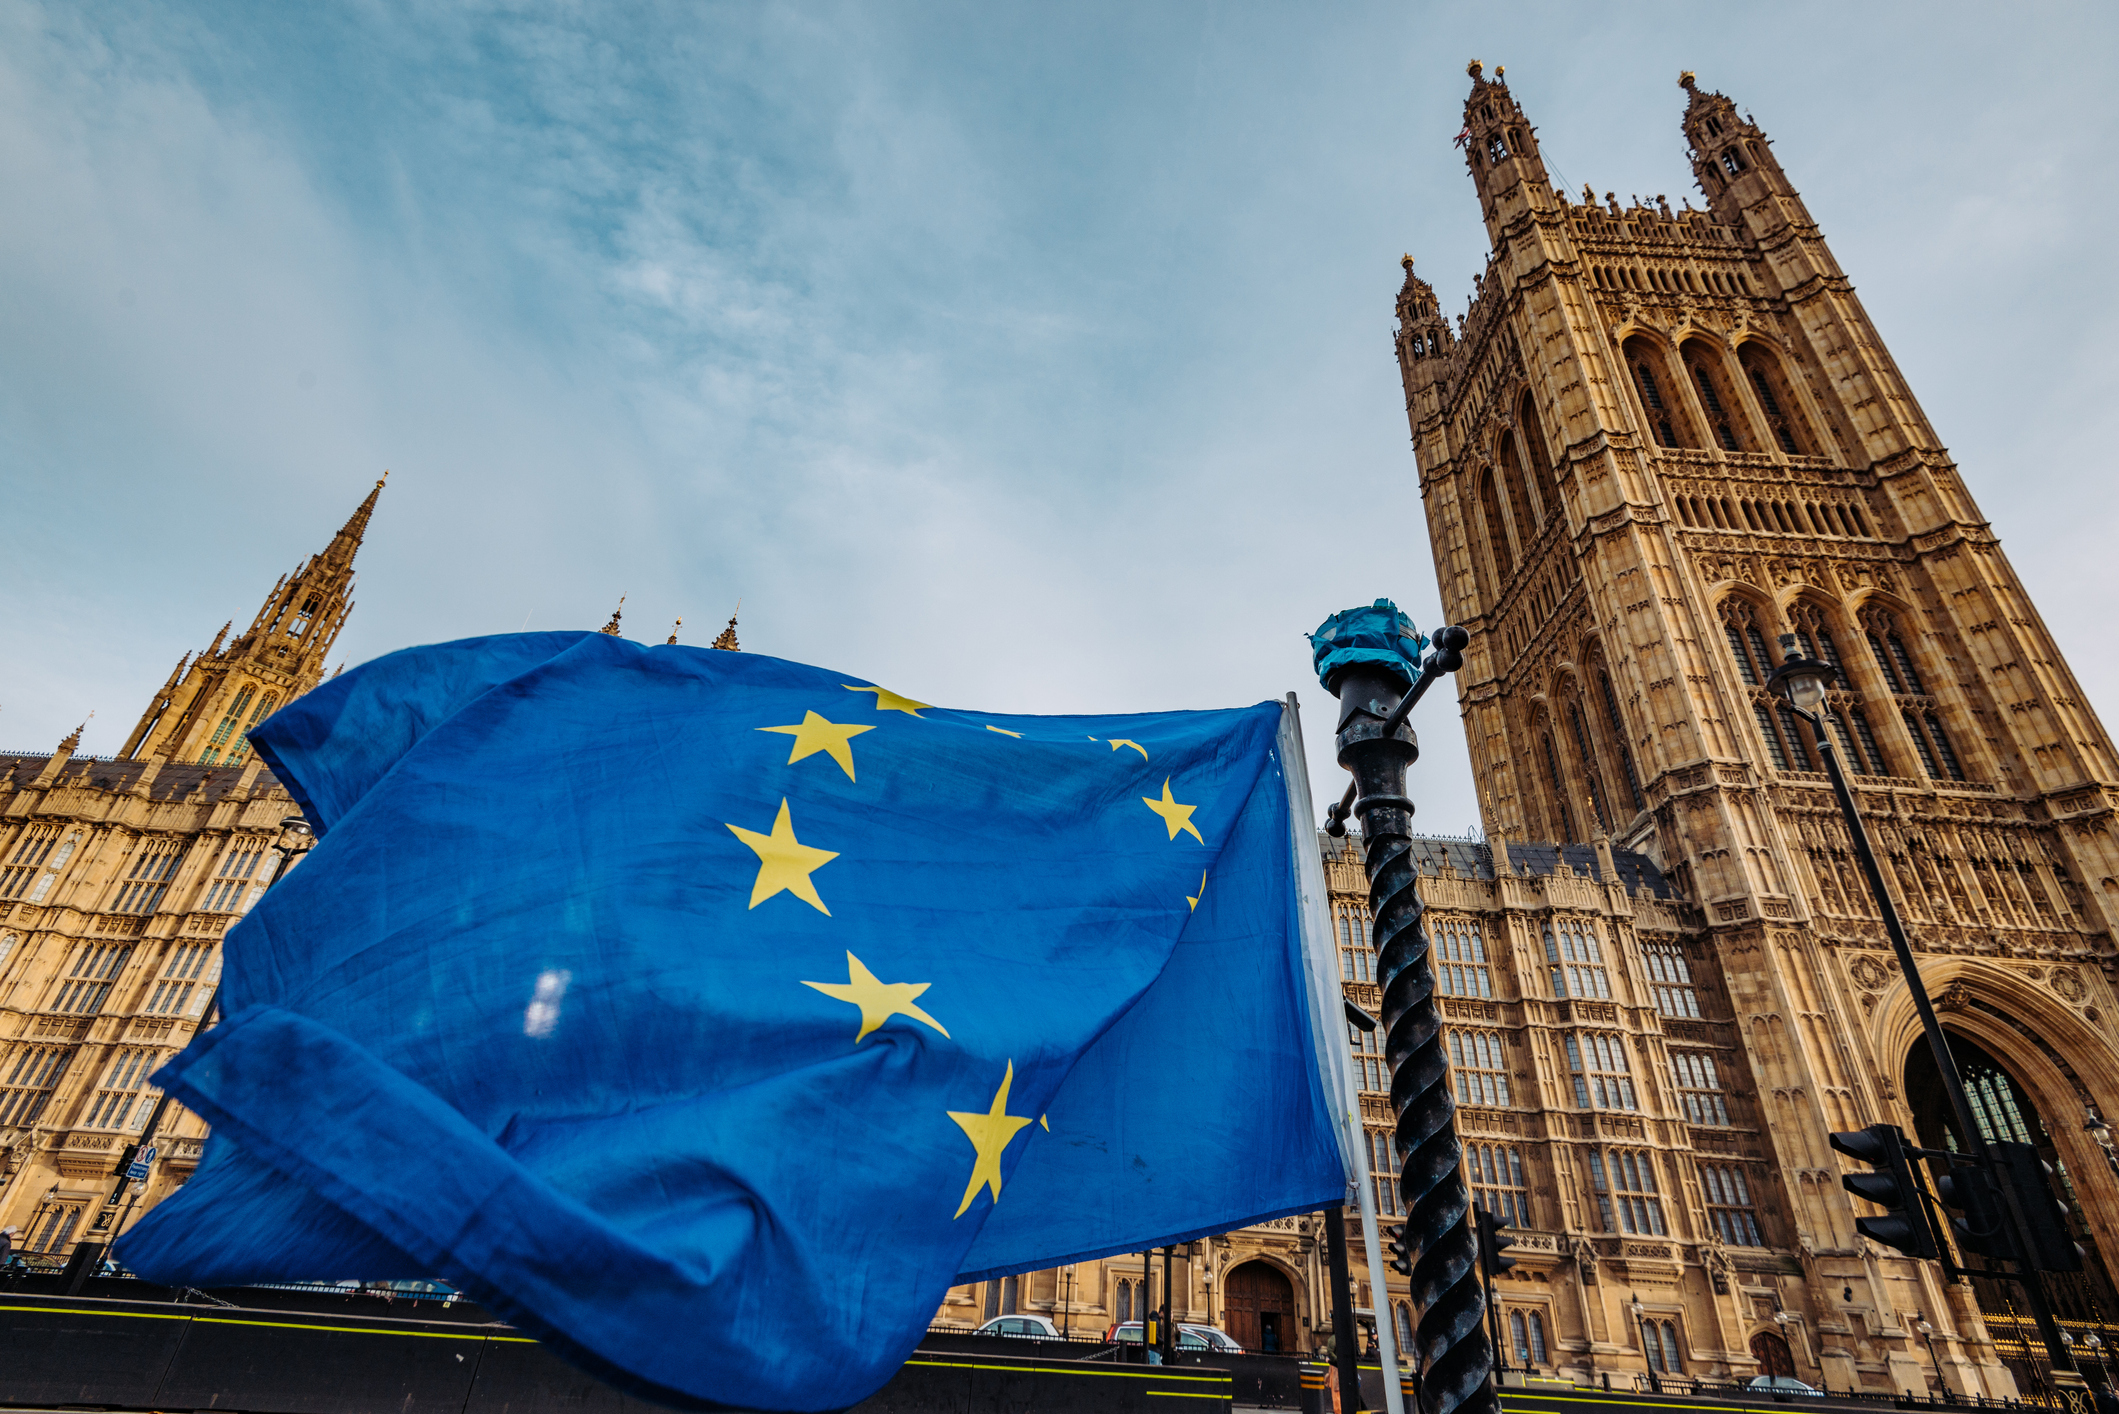 A rundown of the Brexit backstop